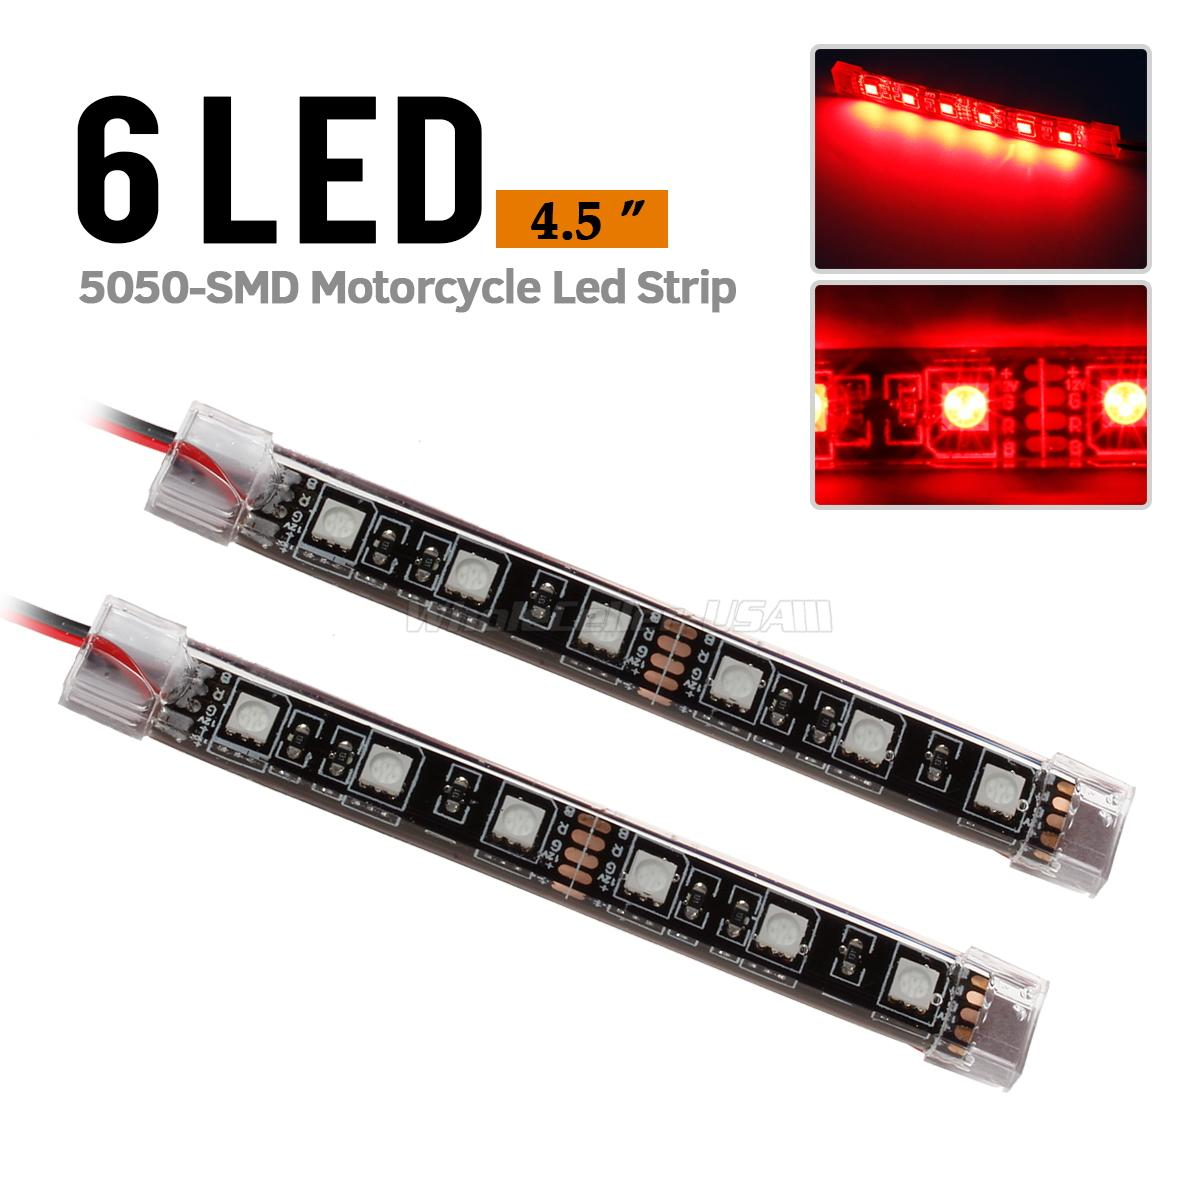 Led strip lights il motorcycle taillights impossible